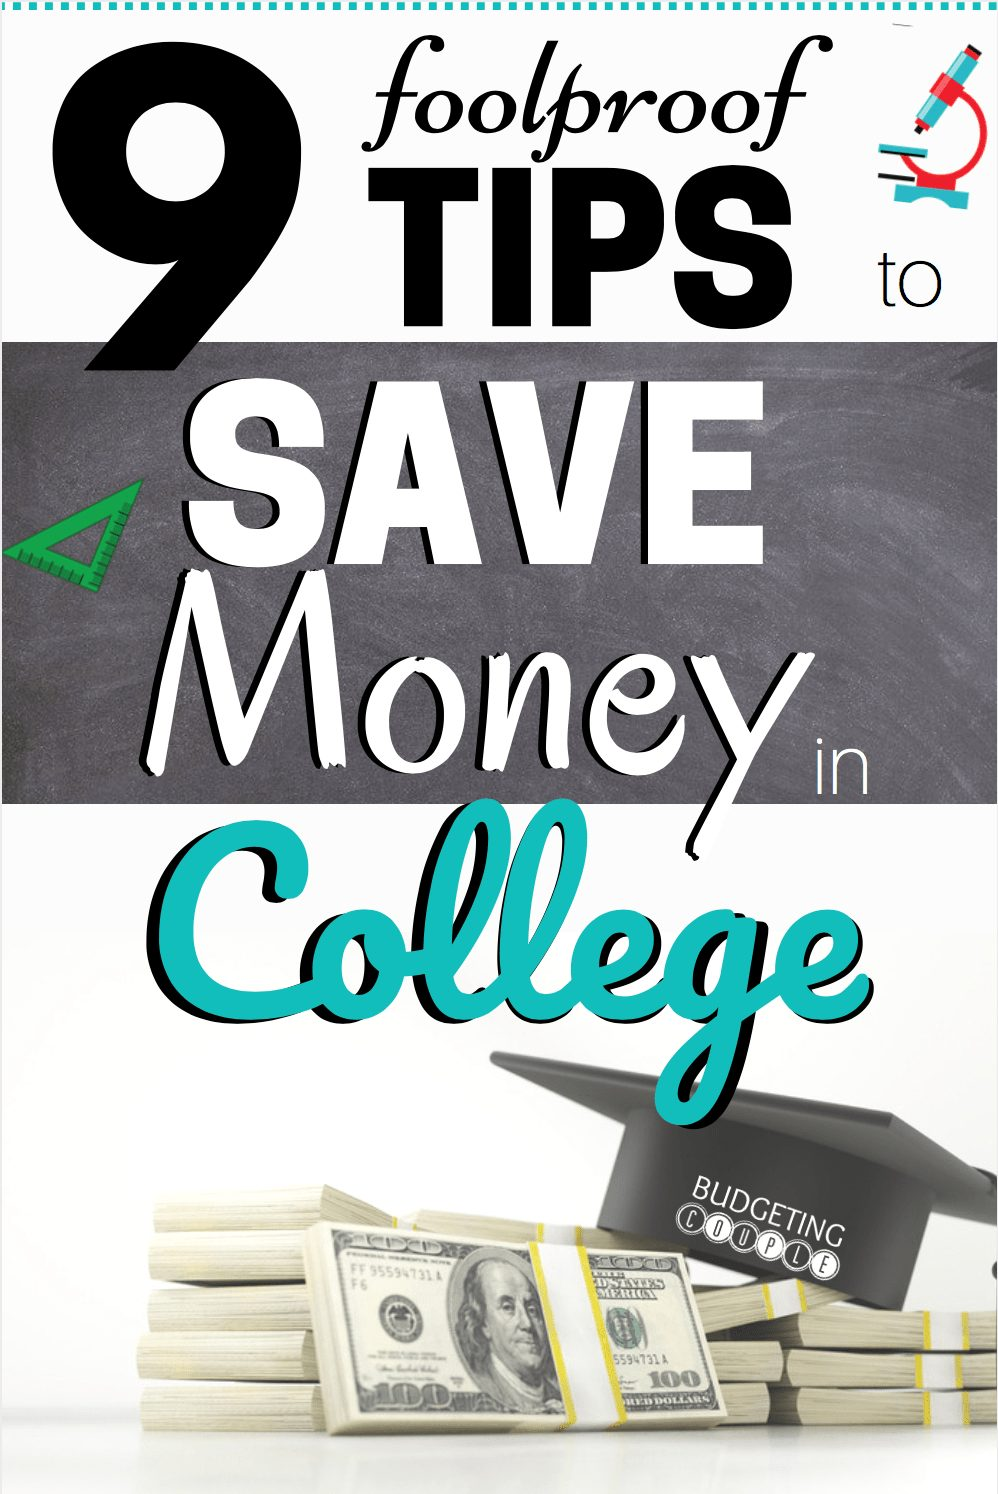 How to Save money in college, college tips and tricks, money saving tips for college students, college hacks for saving money, save money in college